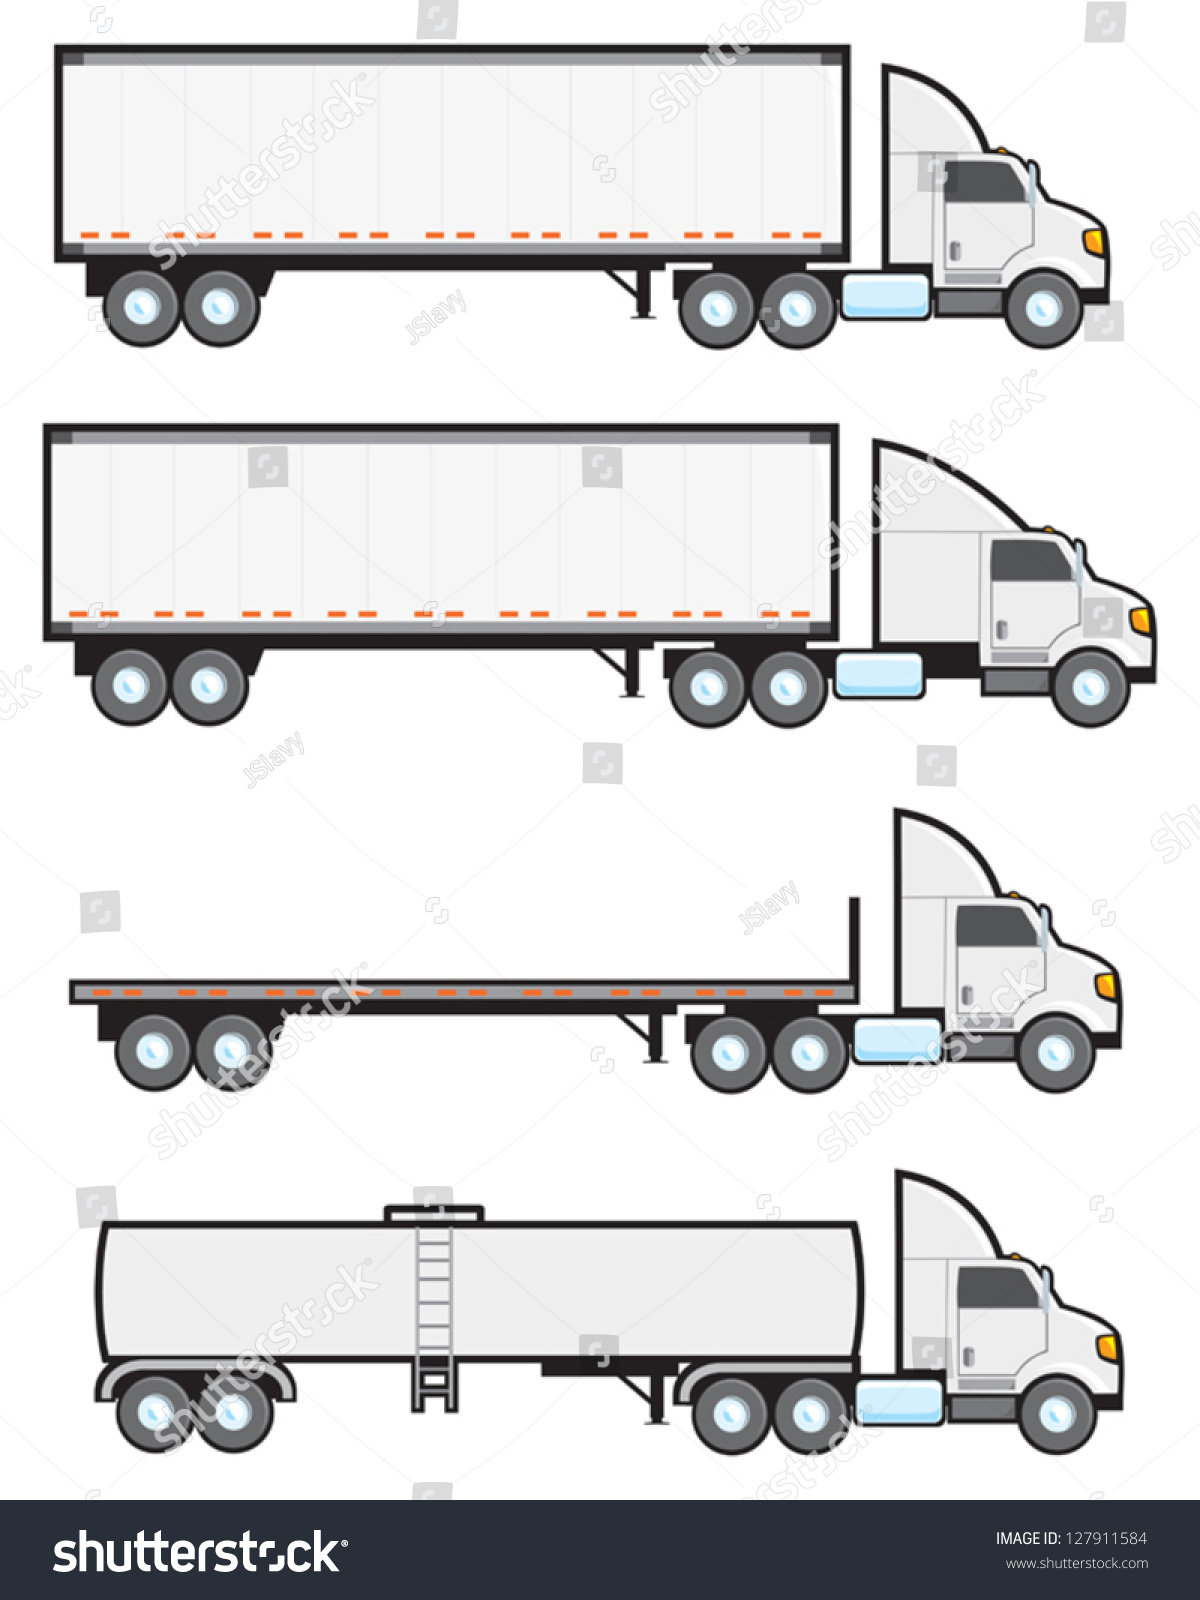 Types Of Tractor Trailers : Four common types american big rigs stock vector